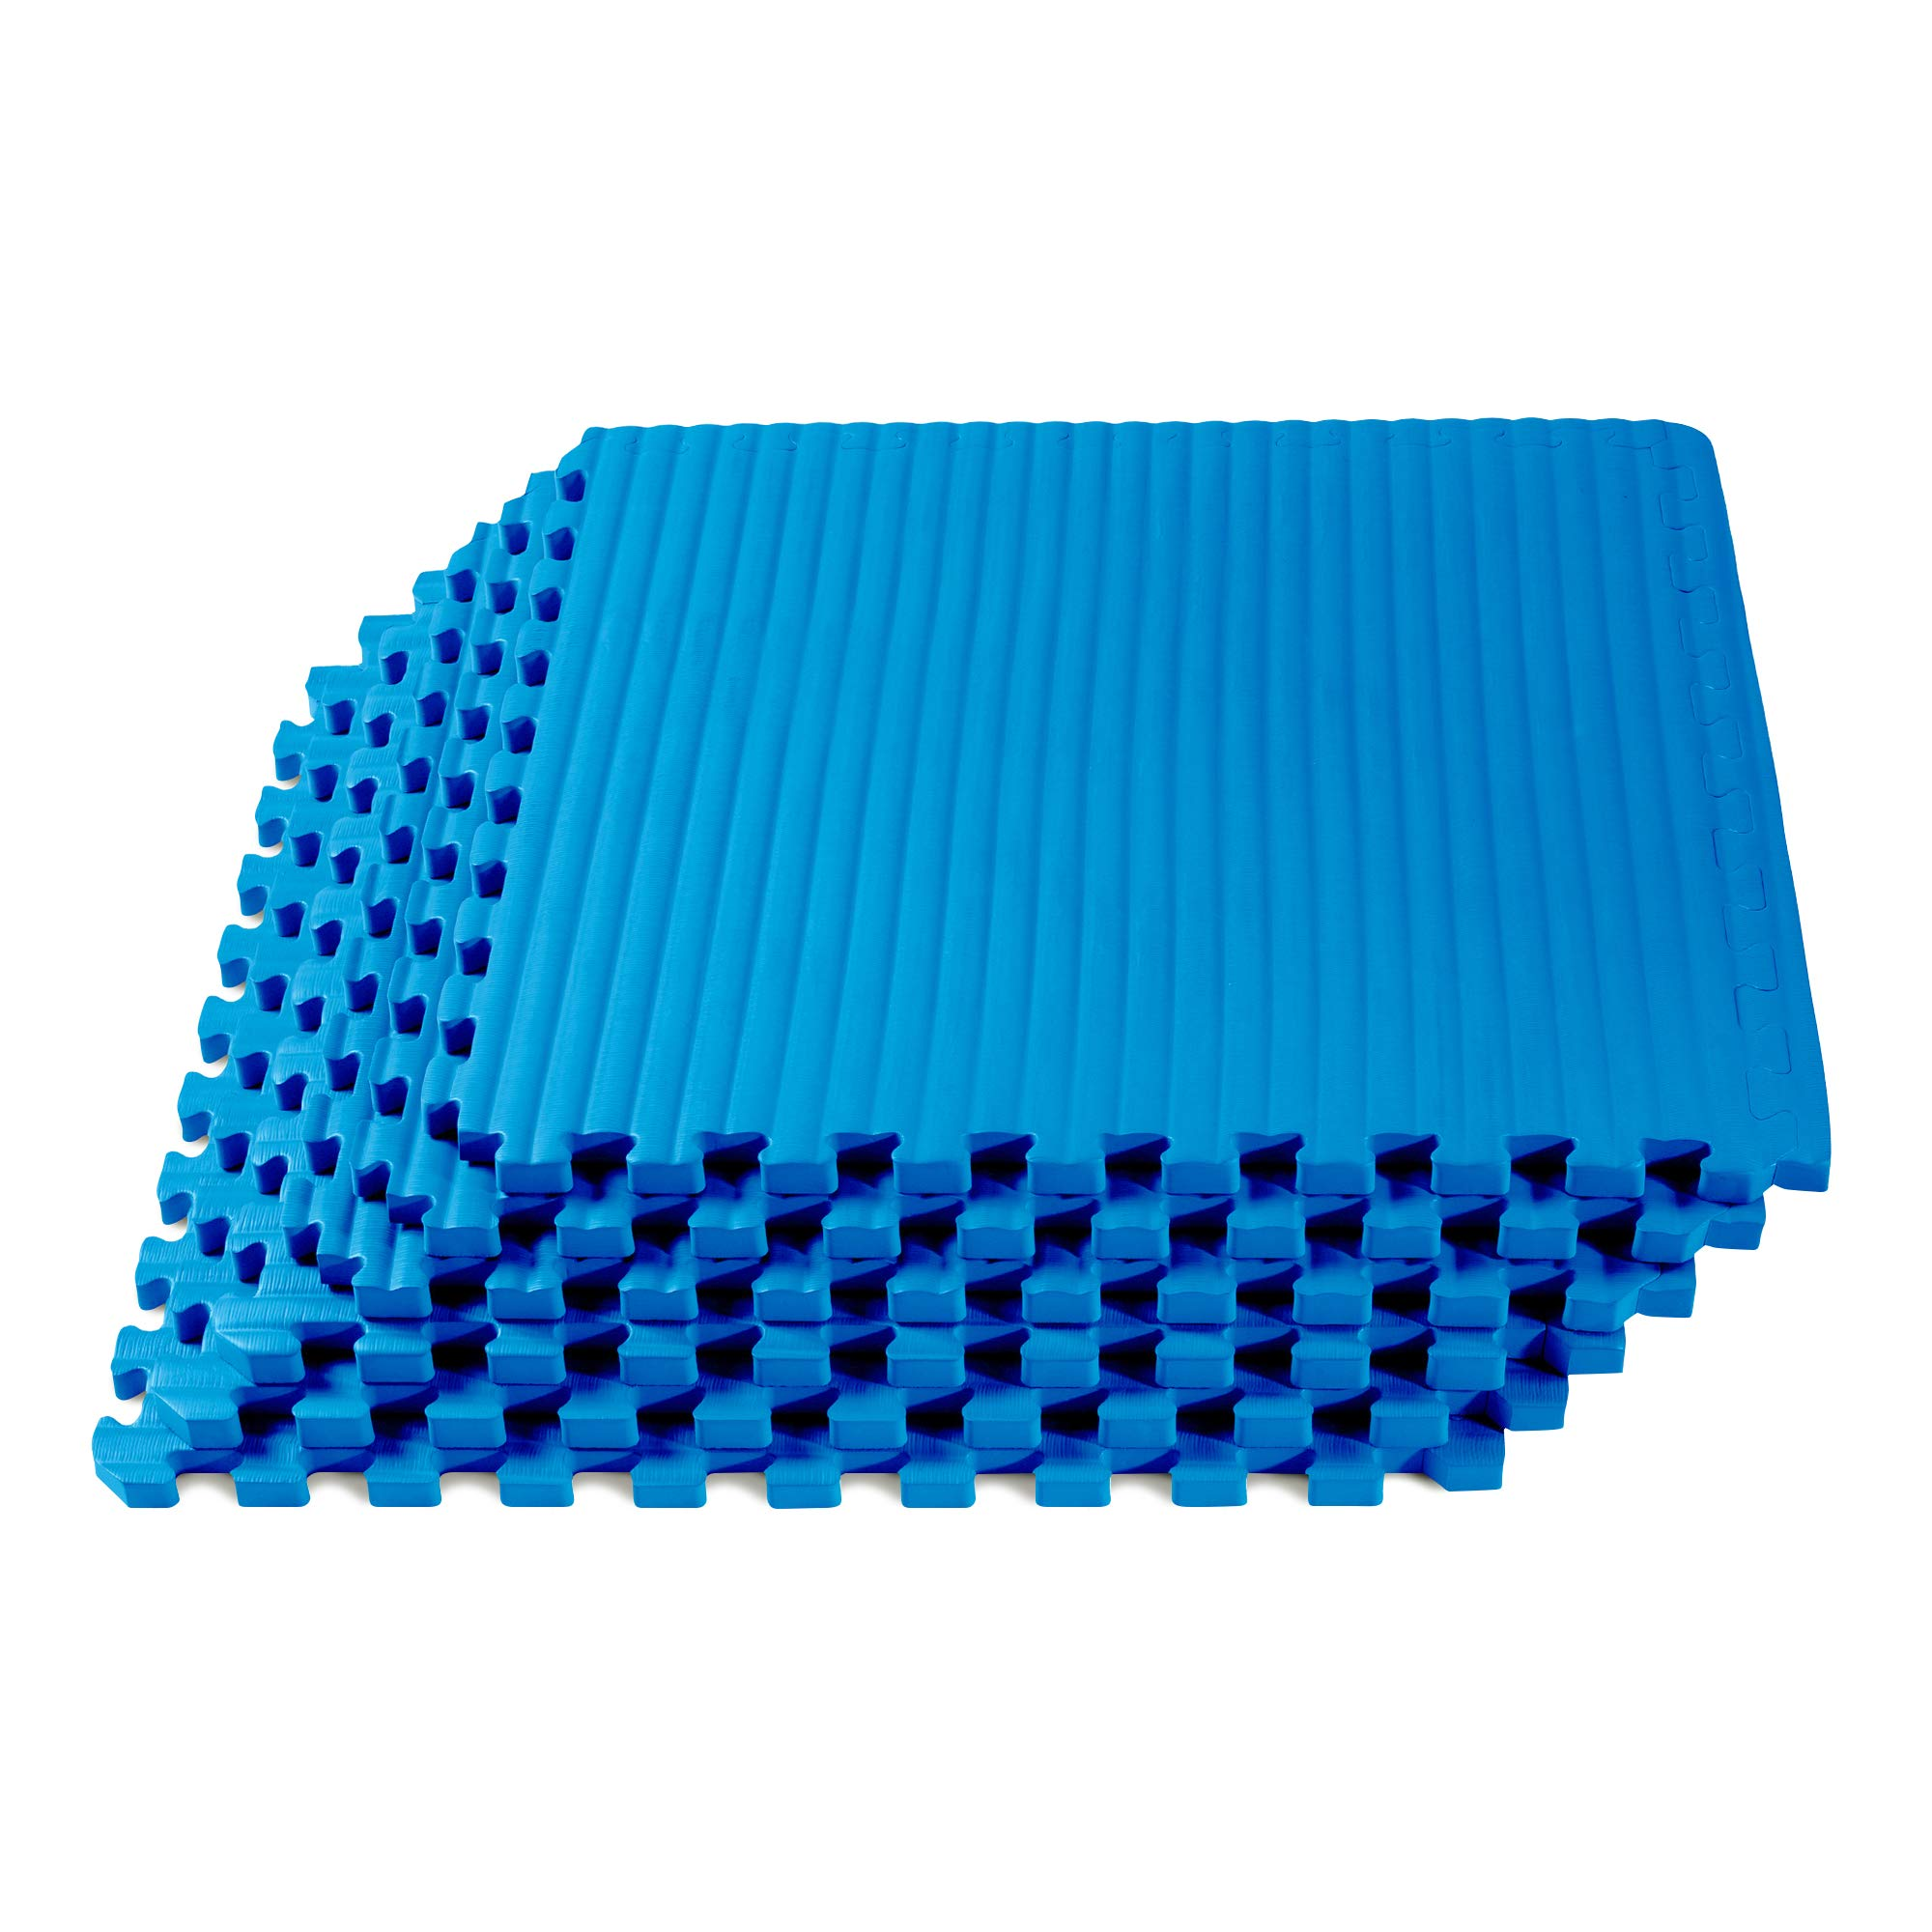 We Sell Mats Martial Arts & MMA Workout Mat, Tatami Pattern with EVA Foam, Interlocking Floor Tiles Tiles, Anti-Fatigue Support, 24 x 24 x 3/4 inch, Blue, 120 Square Feet (30 Tiles)